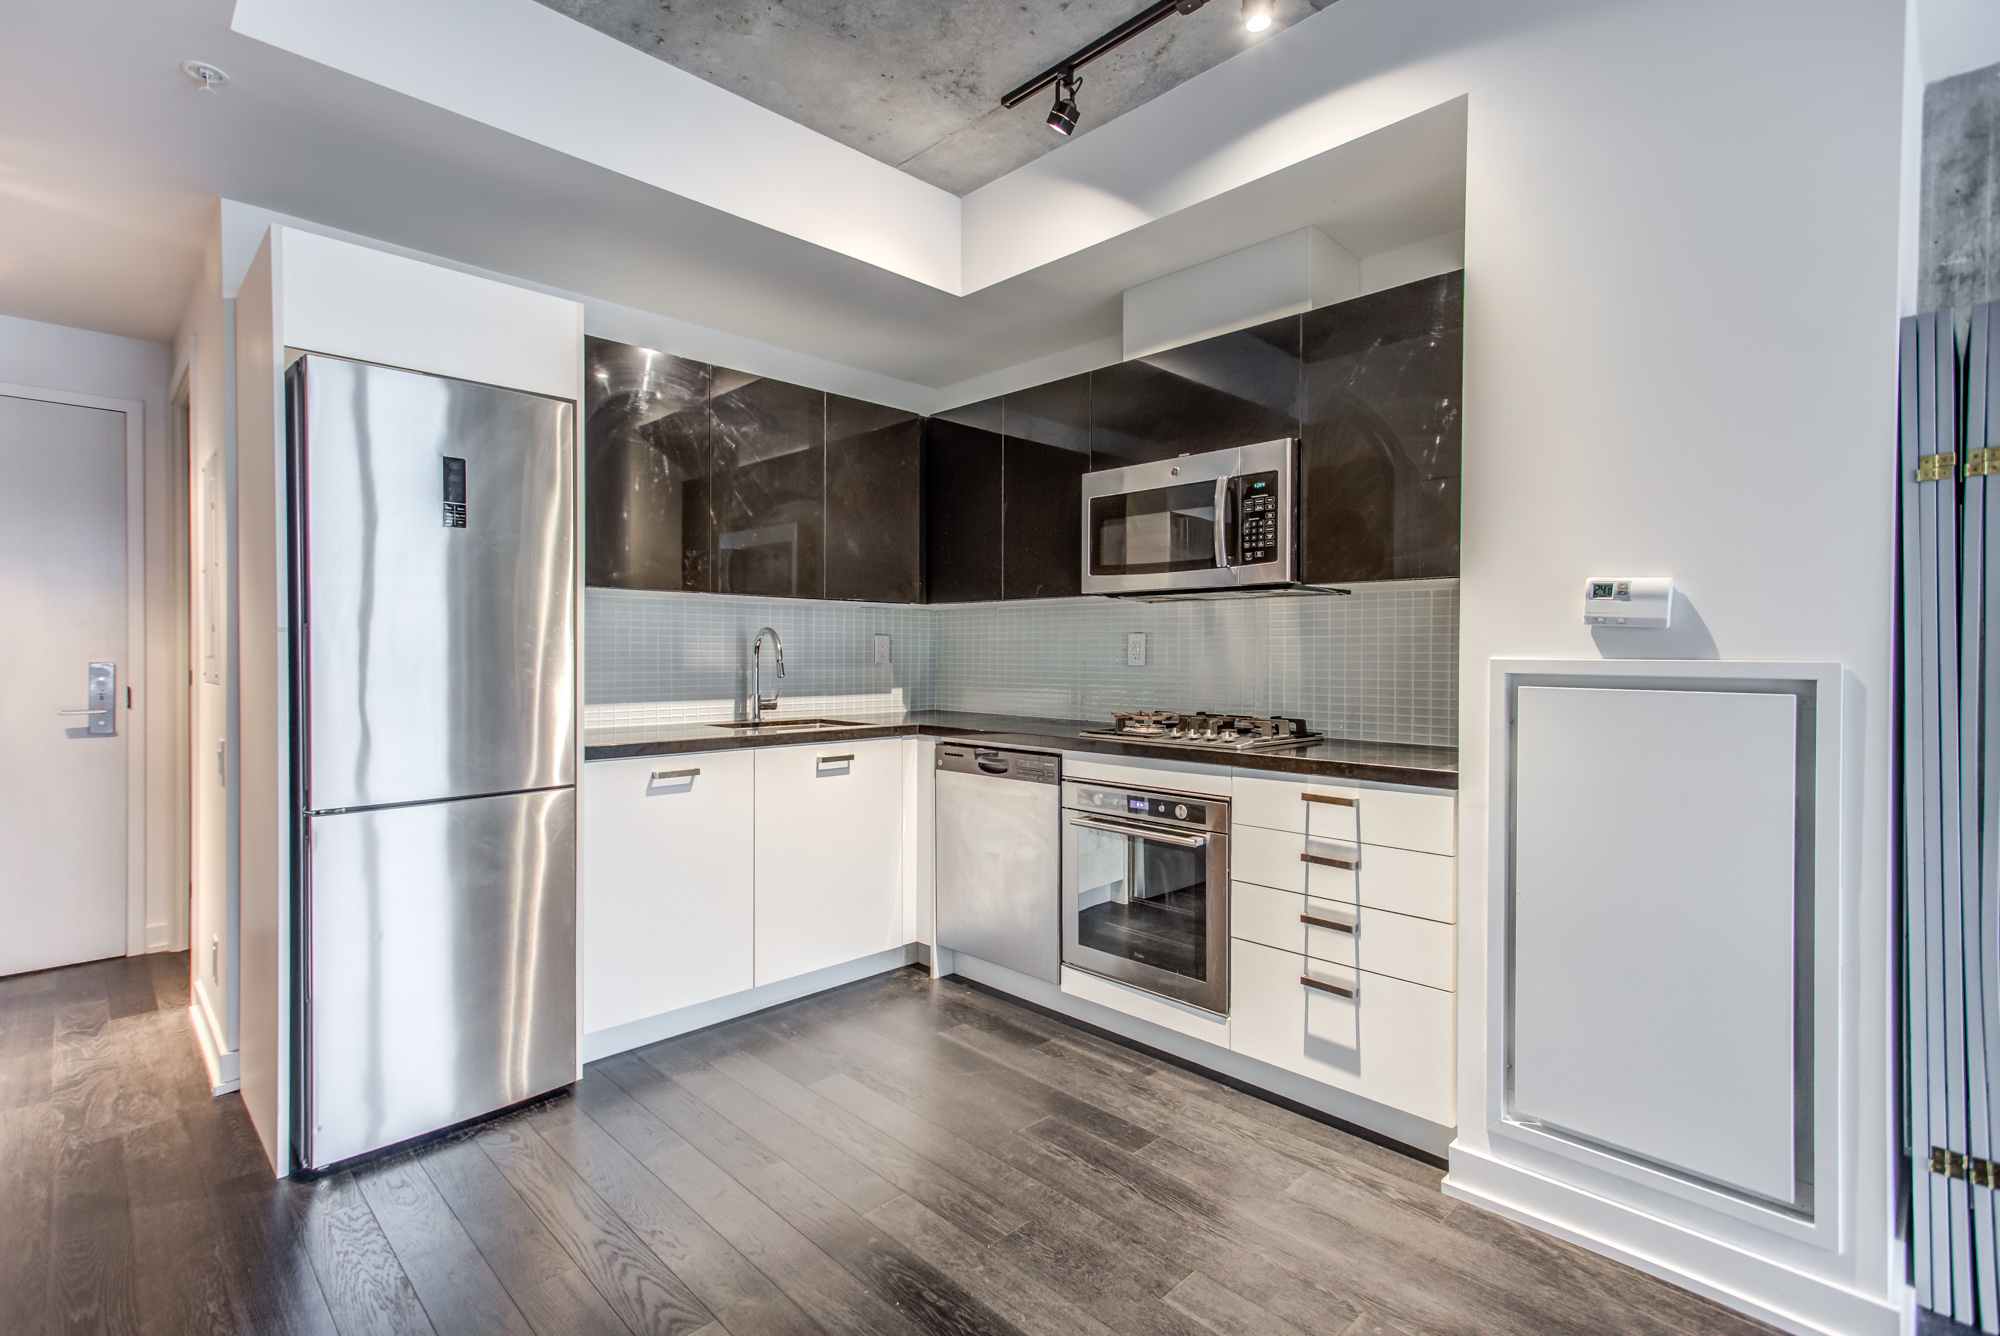 Black and white cabinets and stainless-steel appliances at 39 Brant St Unit 918, Brant Park Lofts, in Queen West.